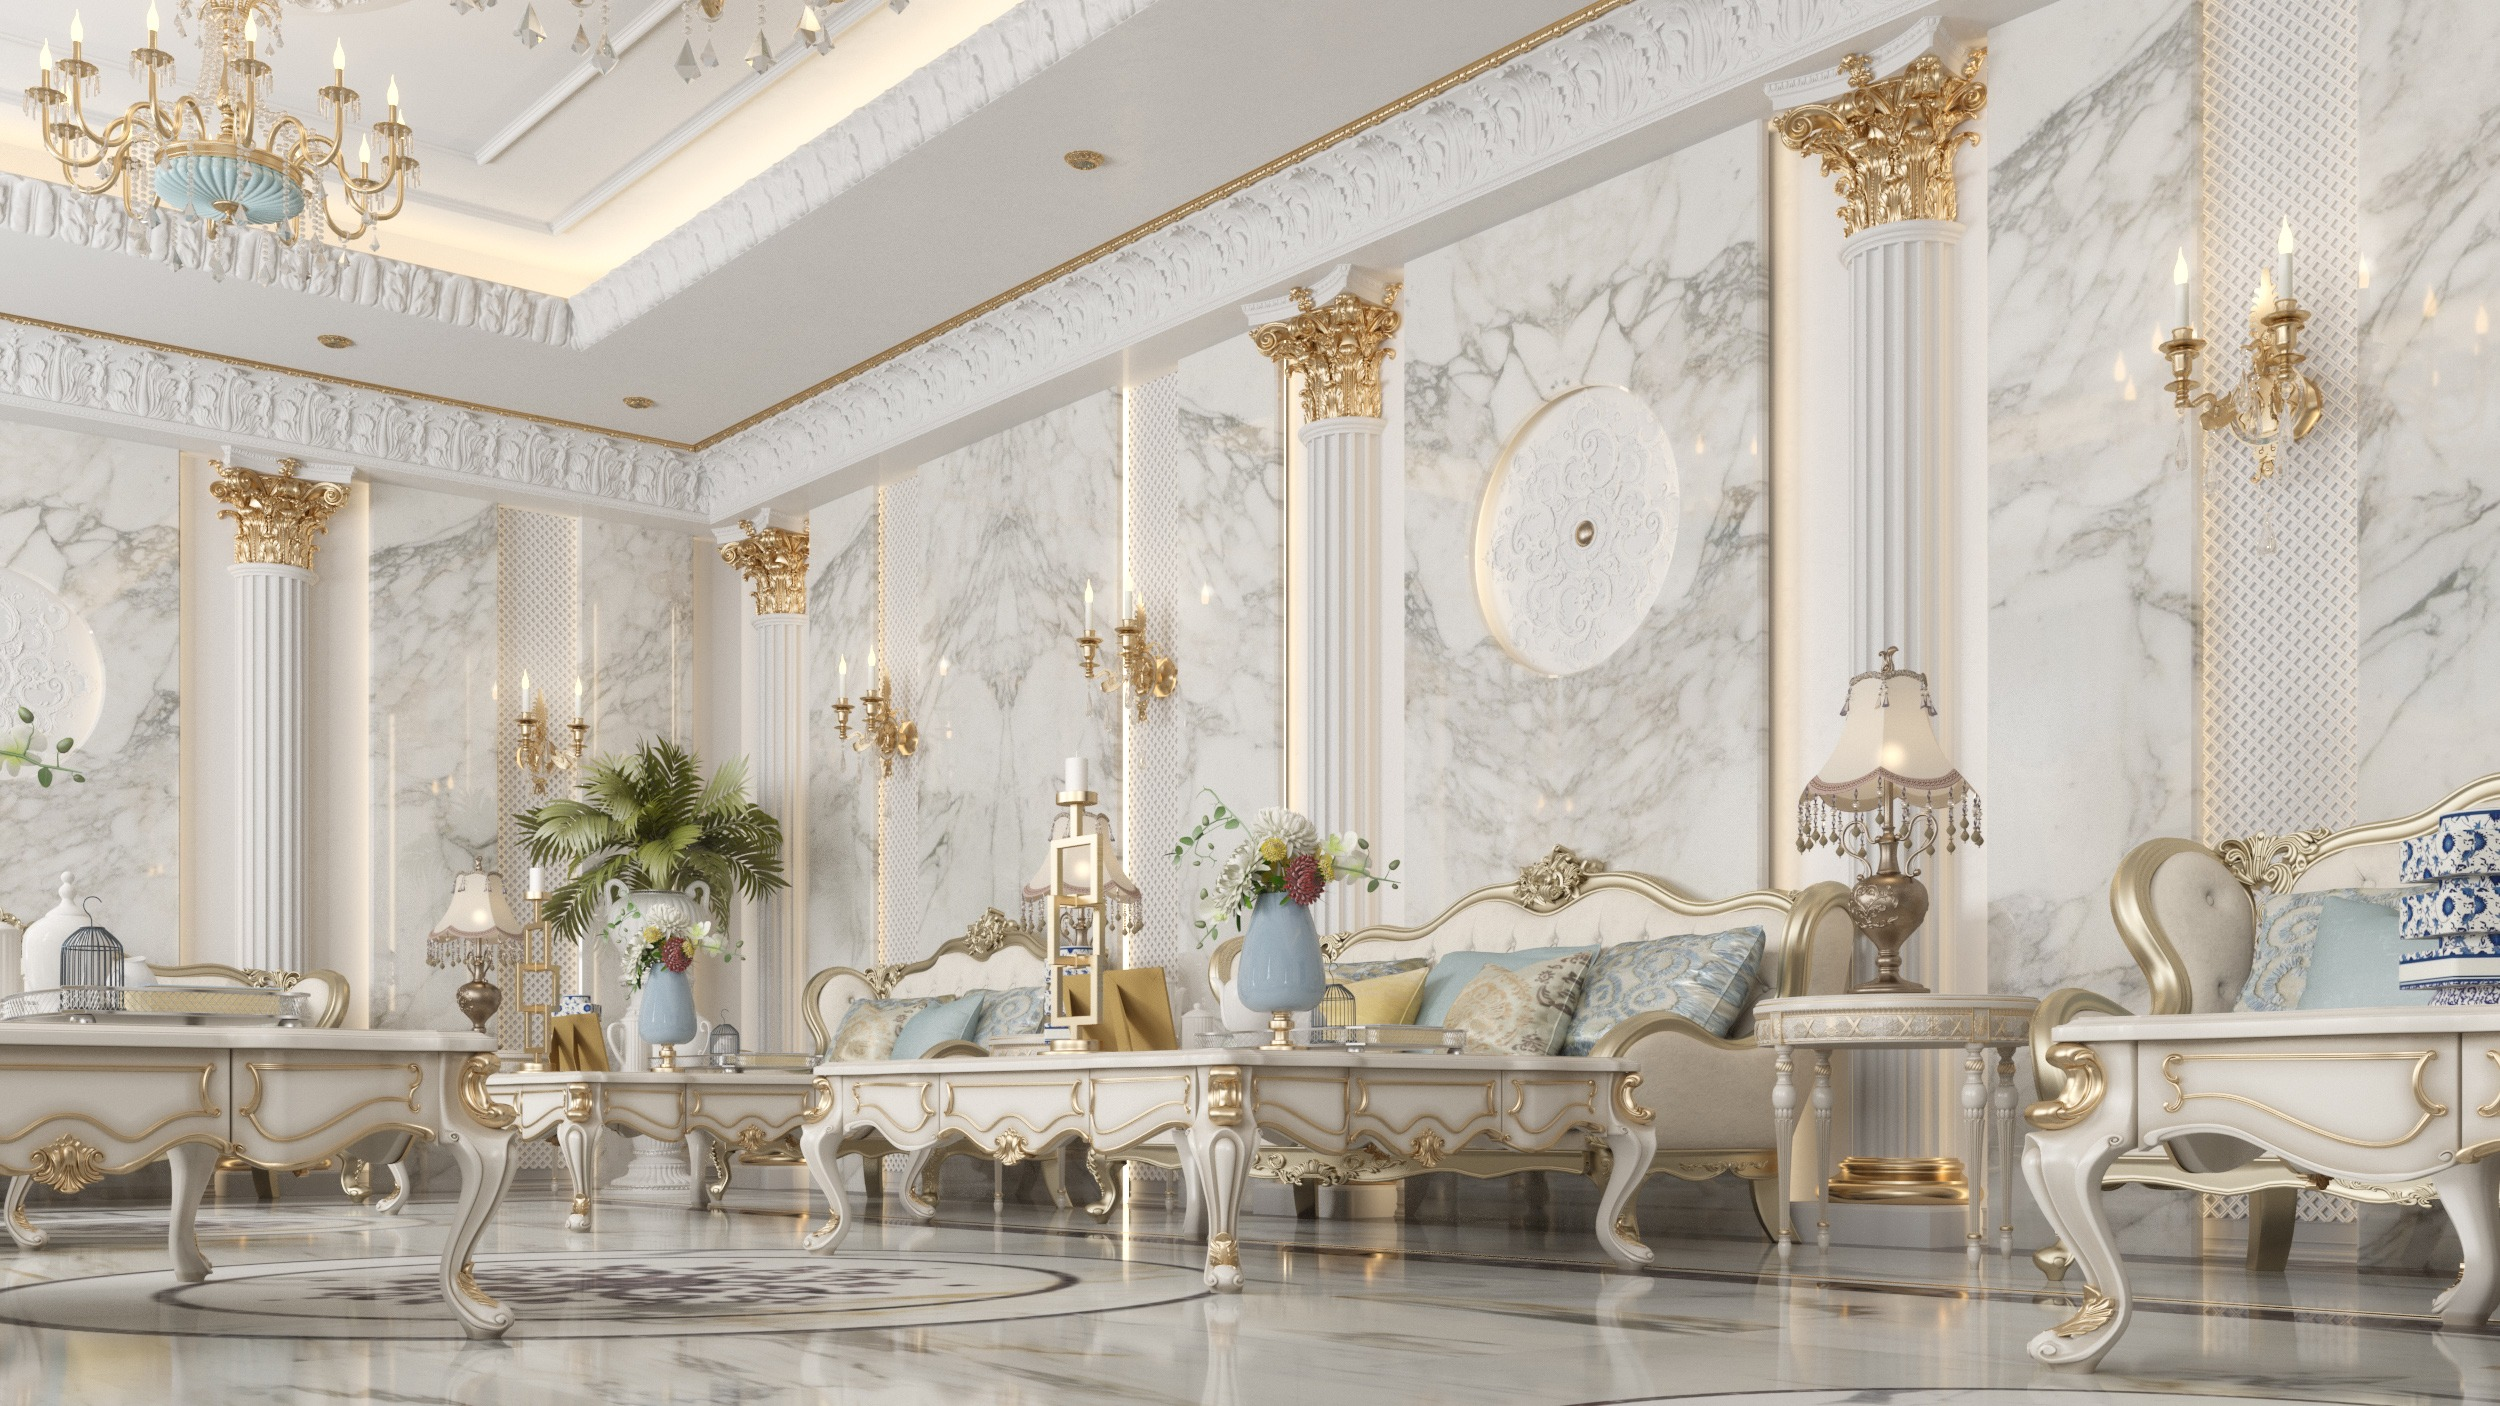 marble walls - classic decoration - luxurious